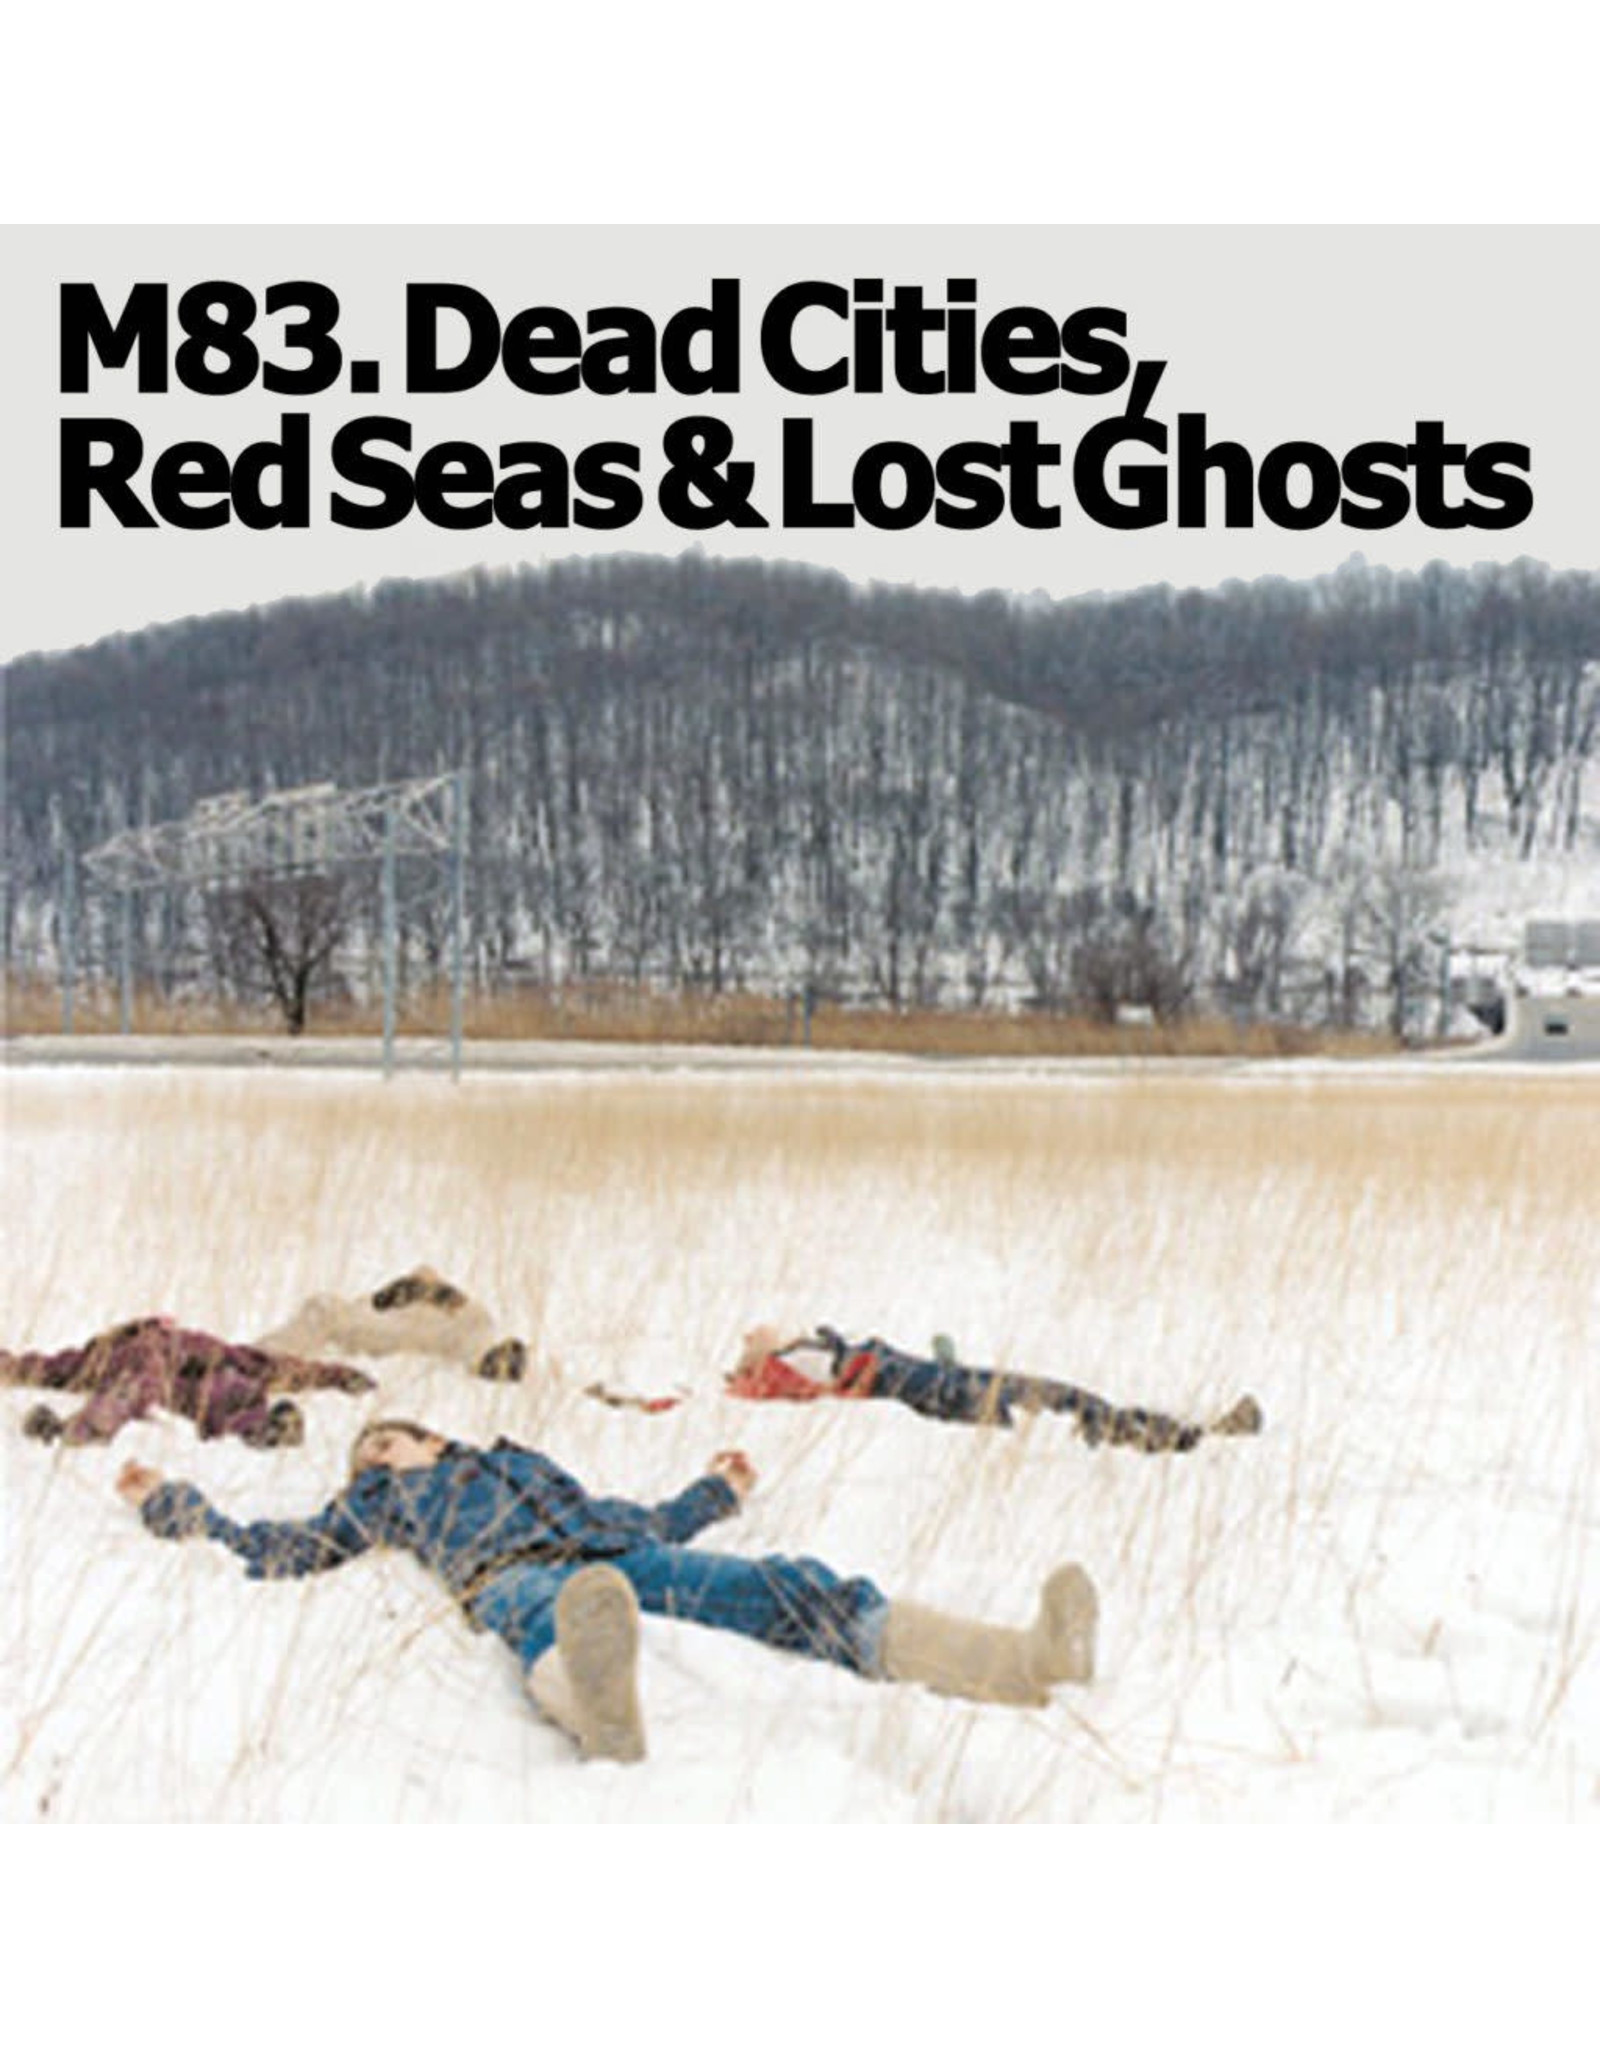 M83 - Dead Cities, Red Seas and Lost Ghosts